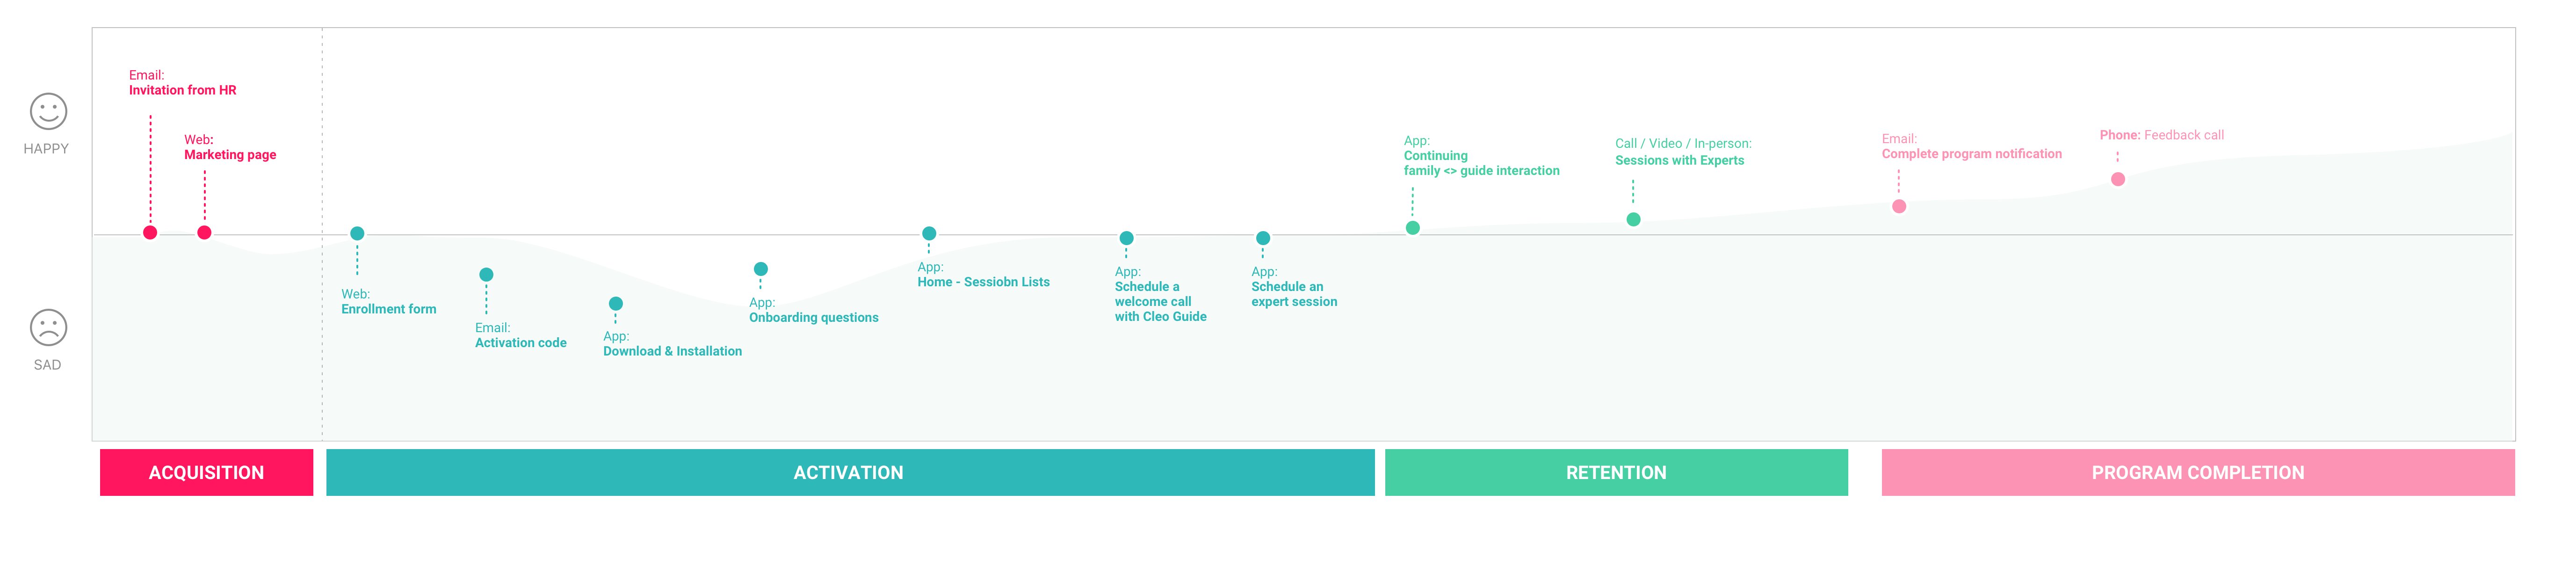 Cleo User Journey Map@2x-small